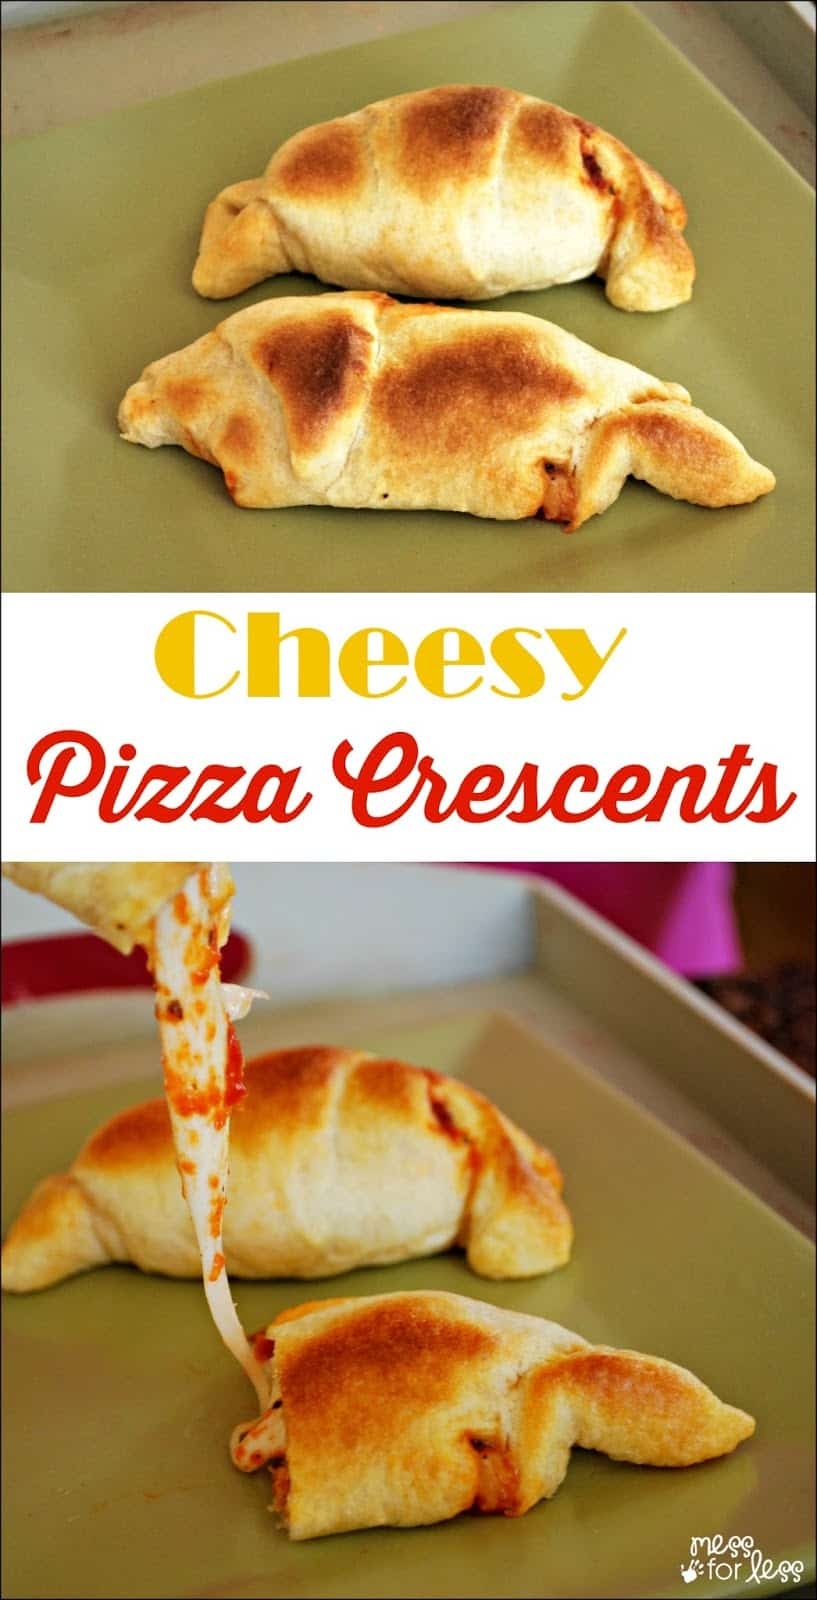 Crescent Roll Recipes: Pizza Crescents - Only 3 ingredients!